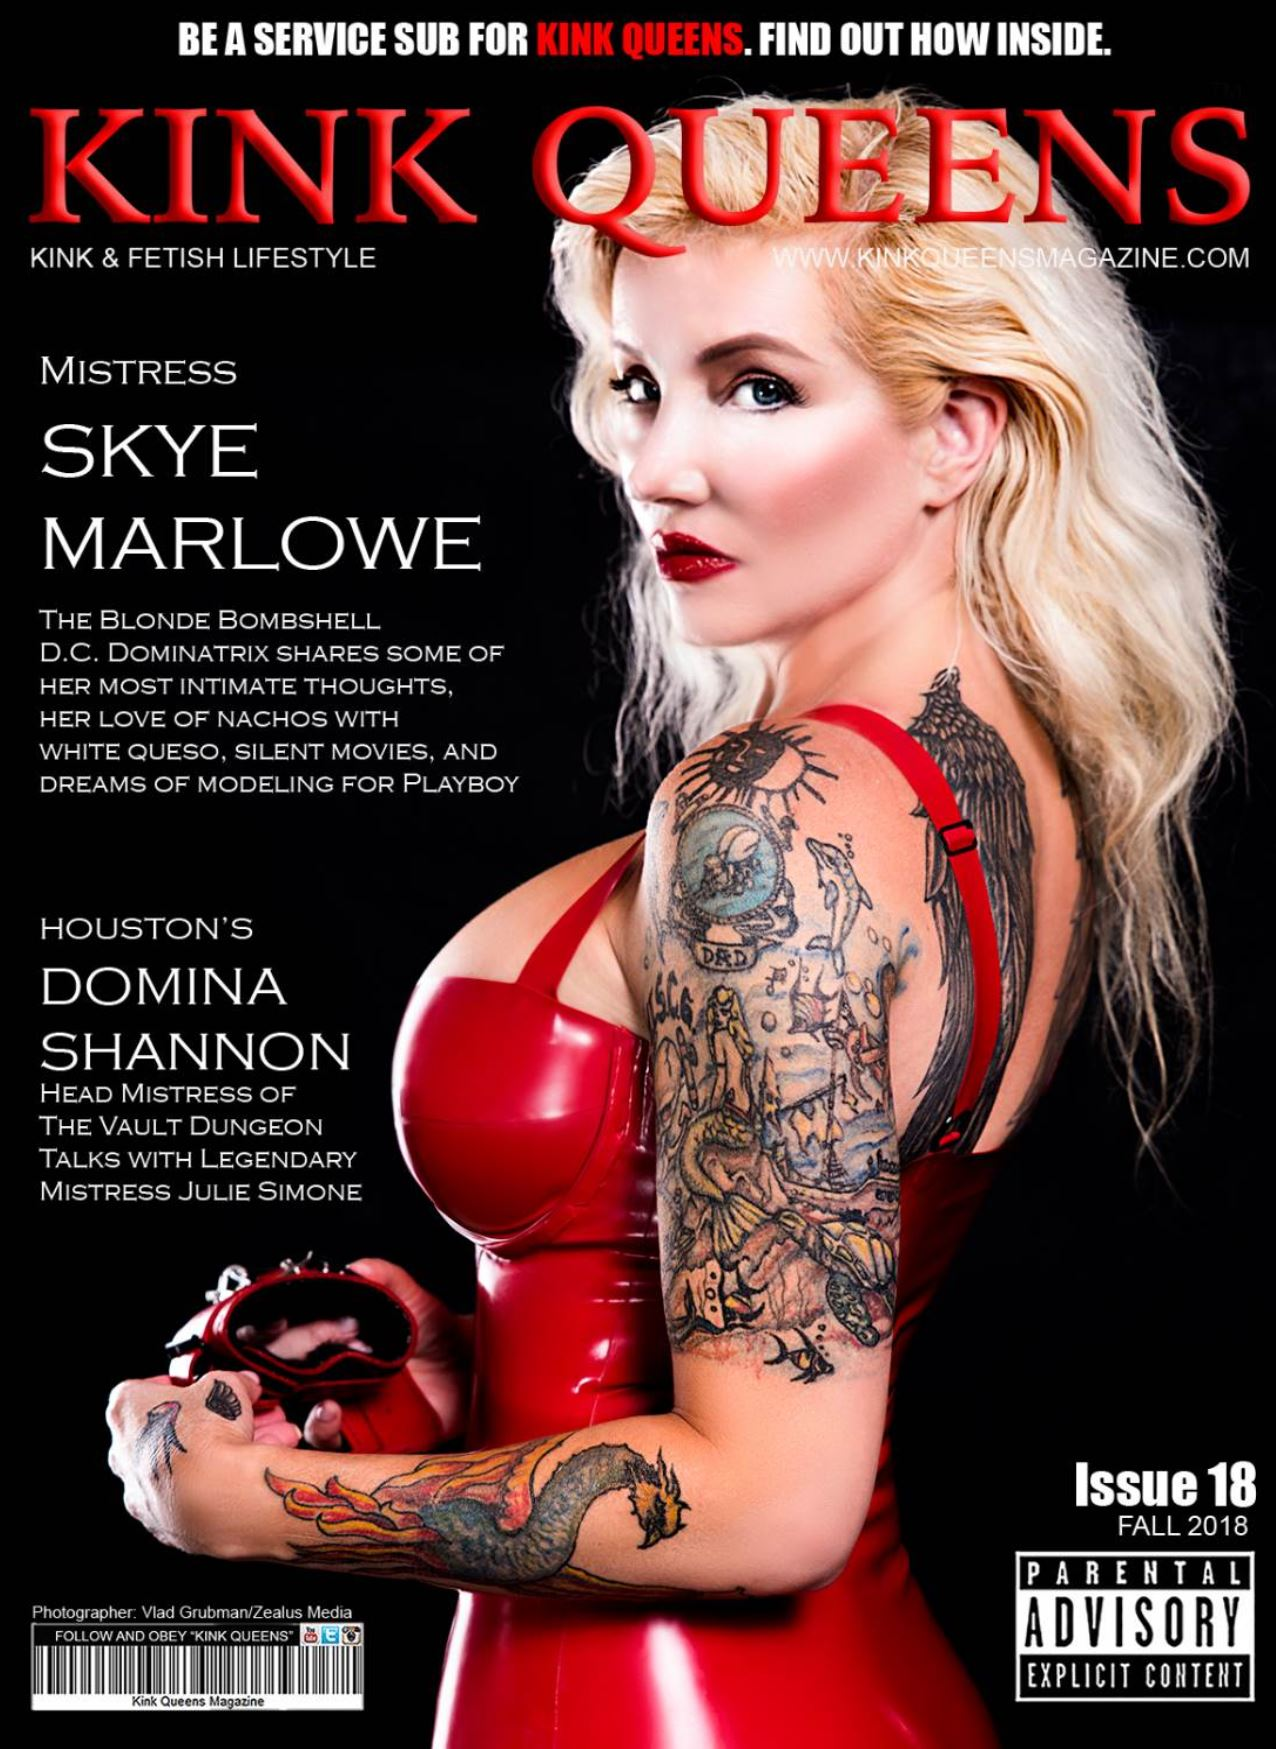 Publication In Kink Queens Magazine